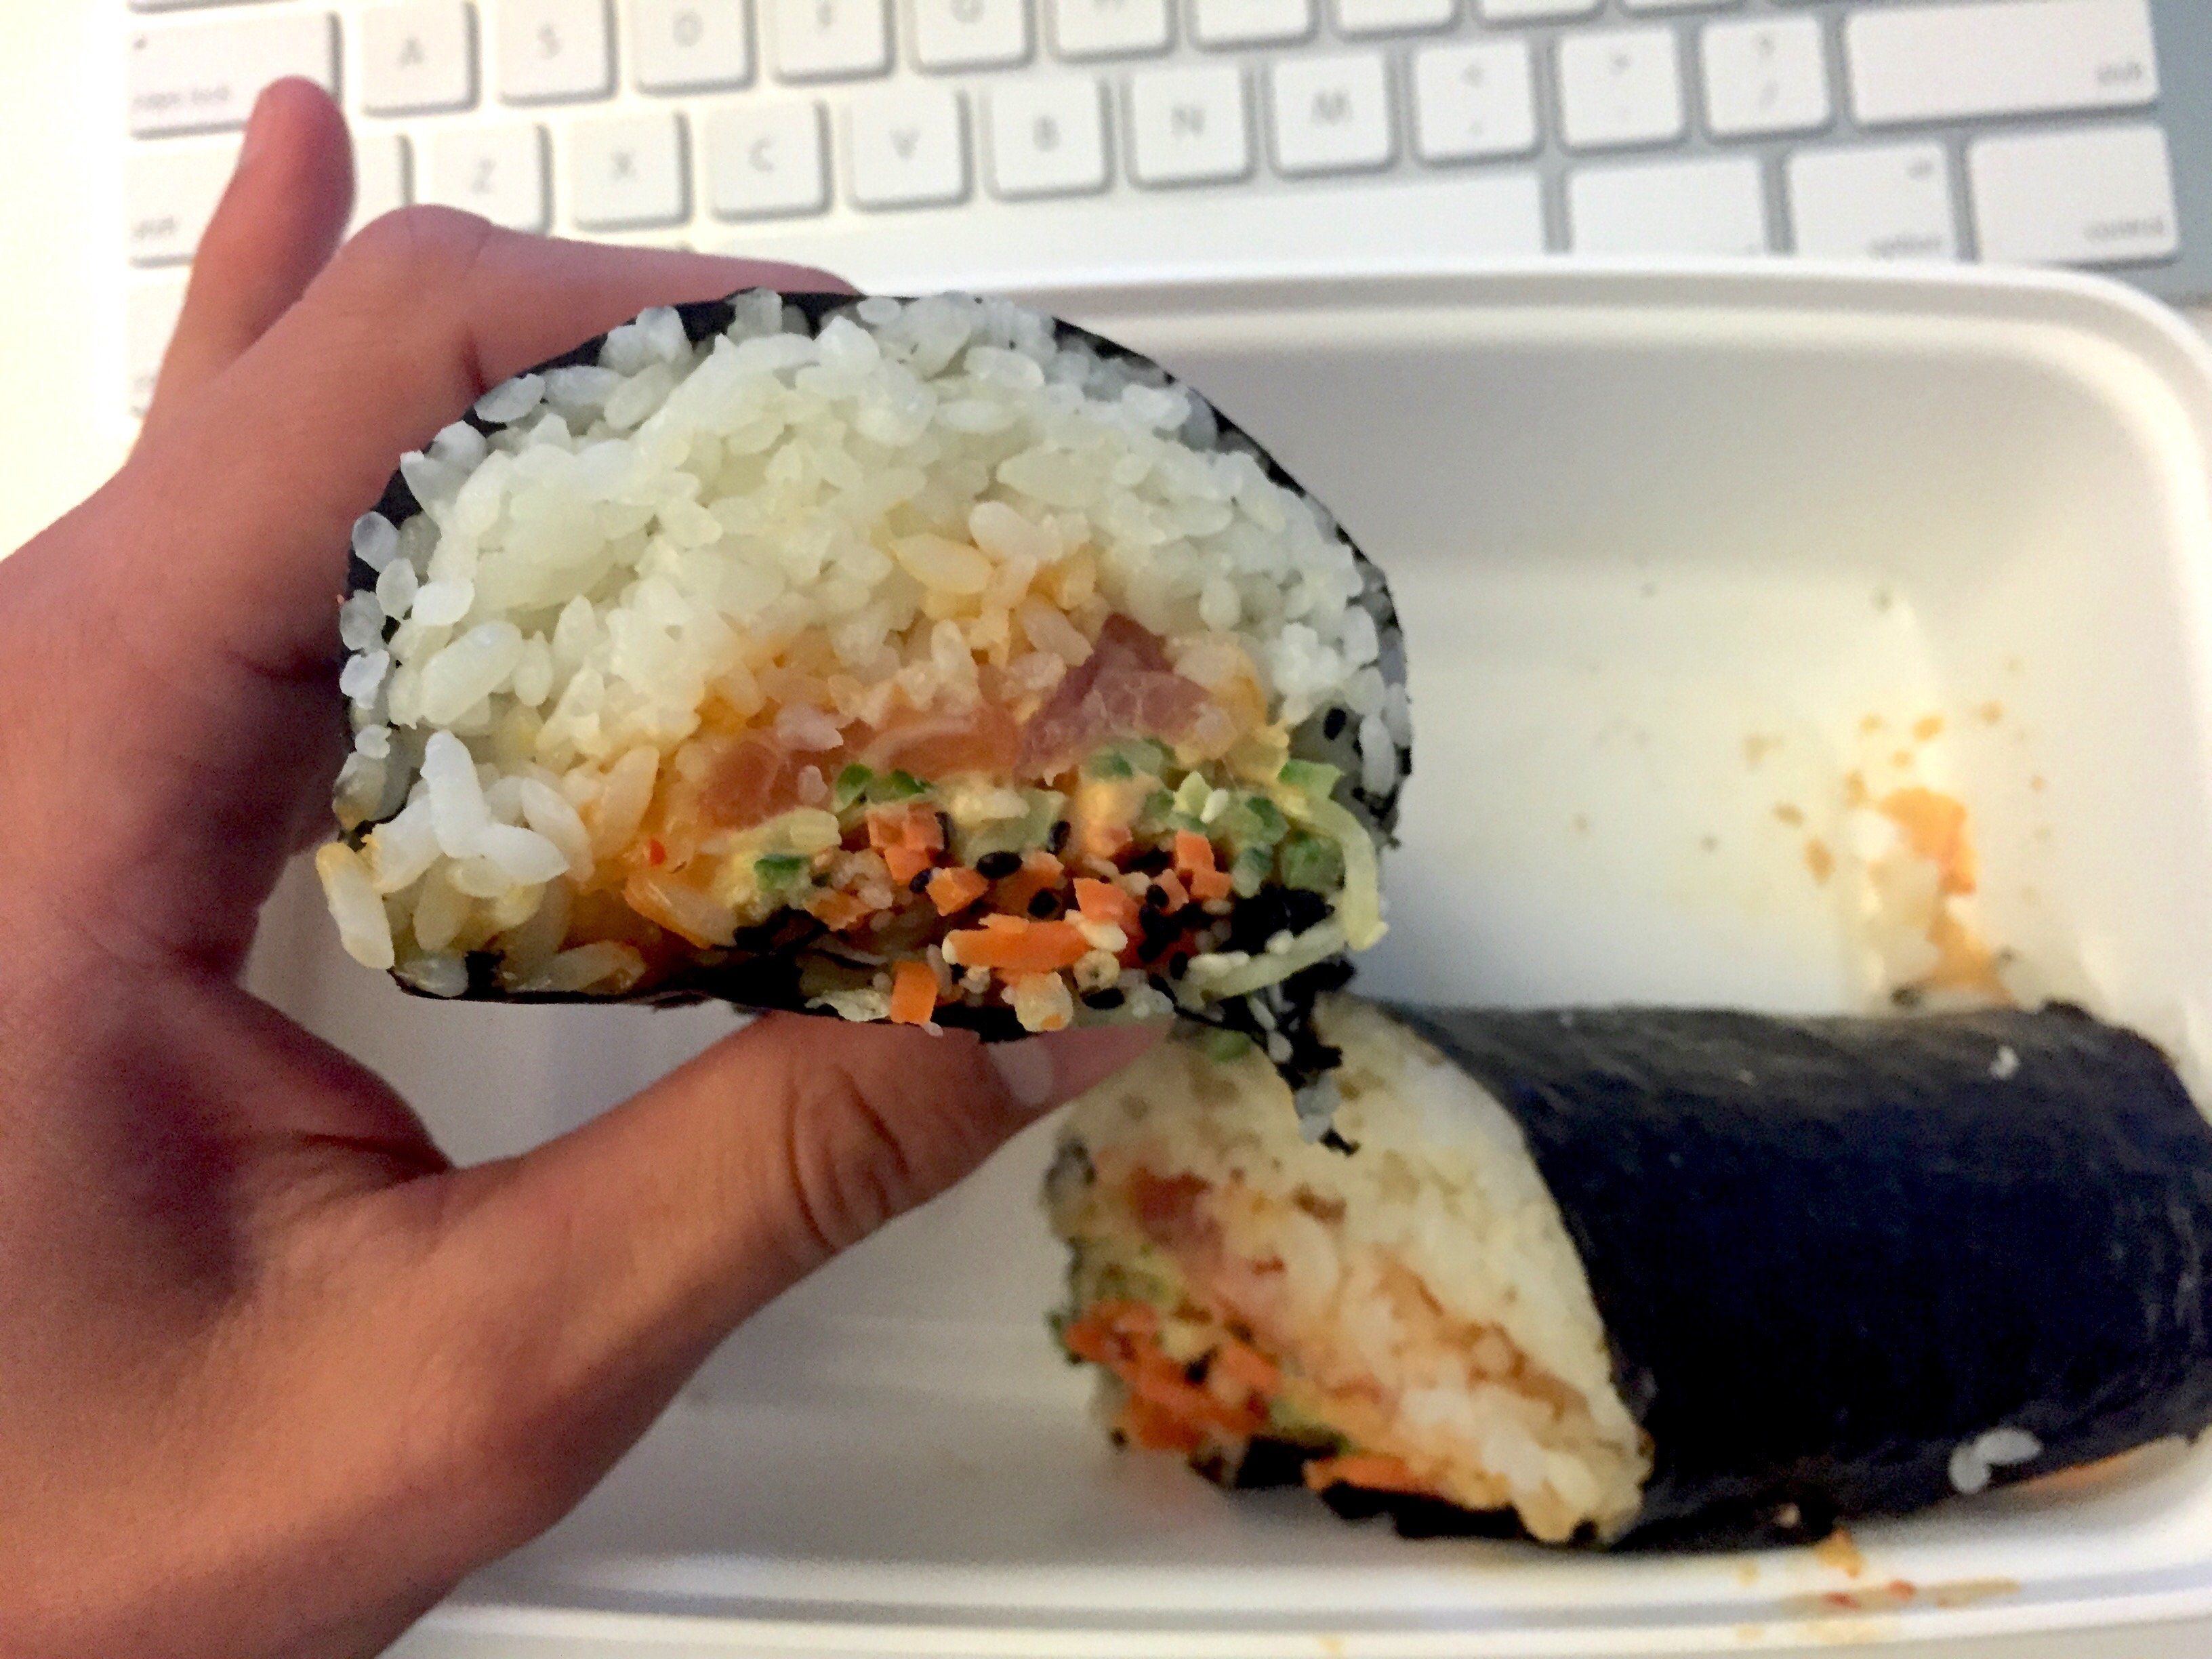 I had an amazing experience ordering a sushi burrito